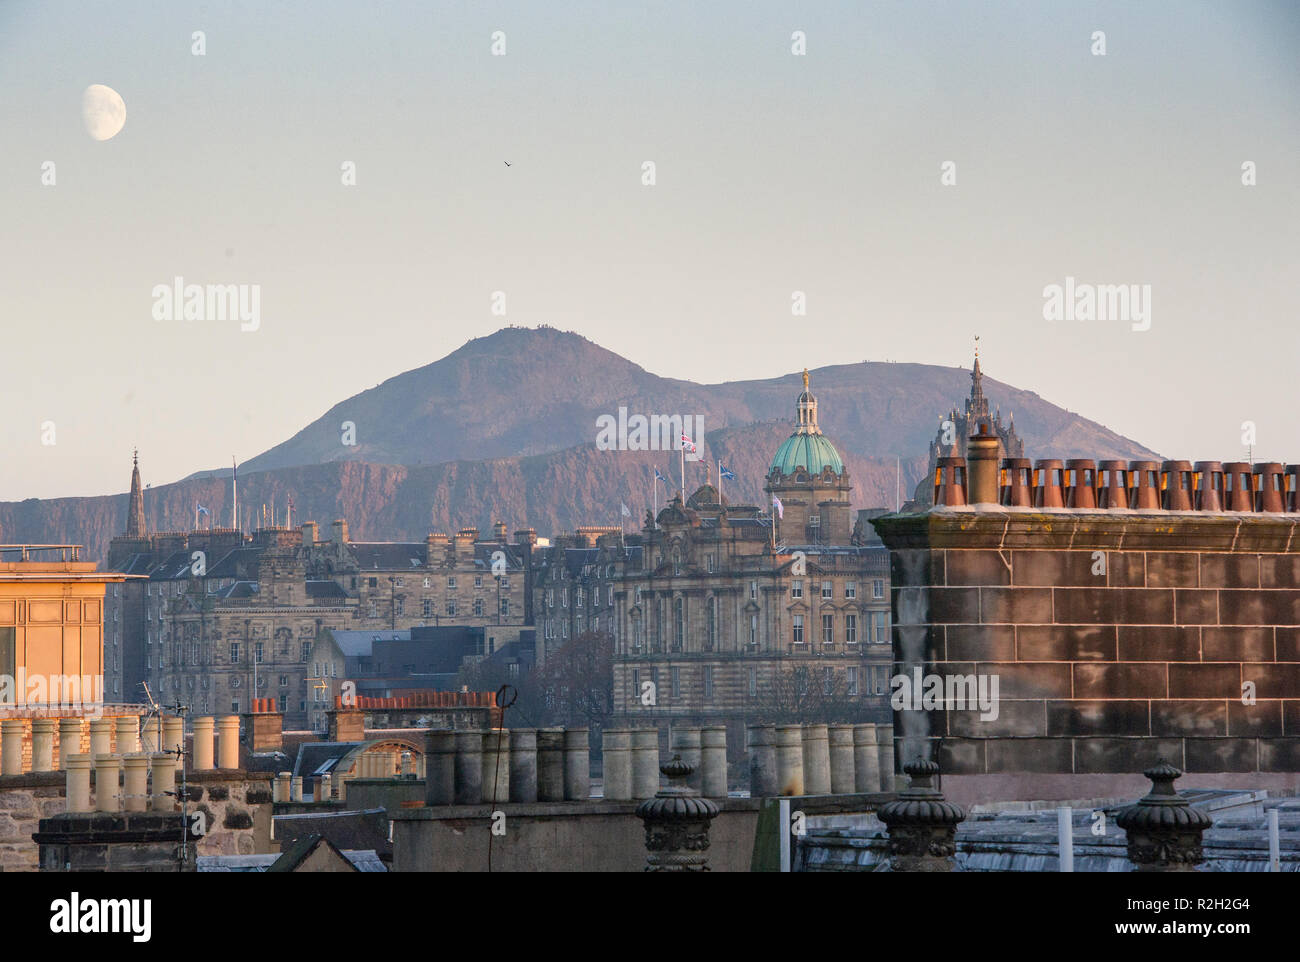 View of the Edinburgh city centre roof tops and the Bank of Scotland headquarters on the Mound, Edinburgh, Scotland. Stock Photo